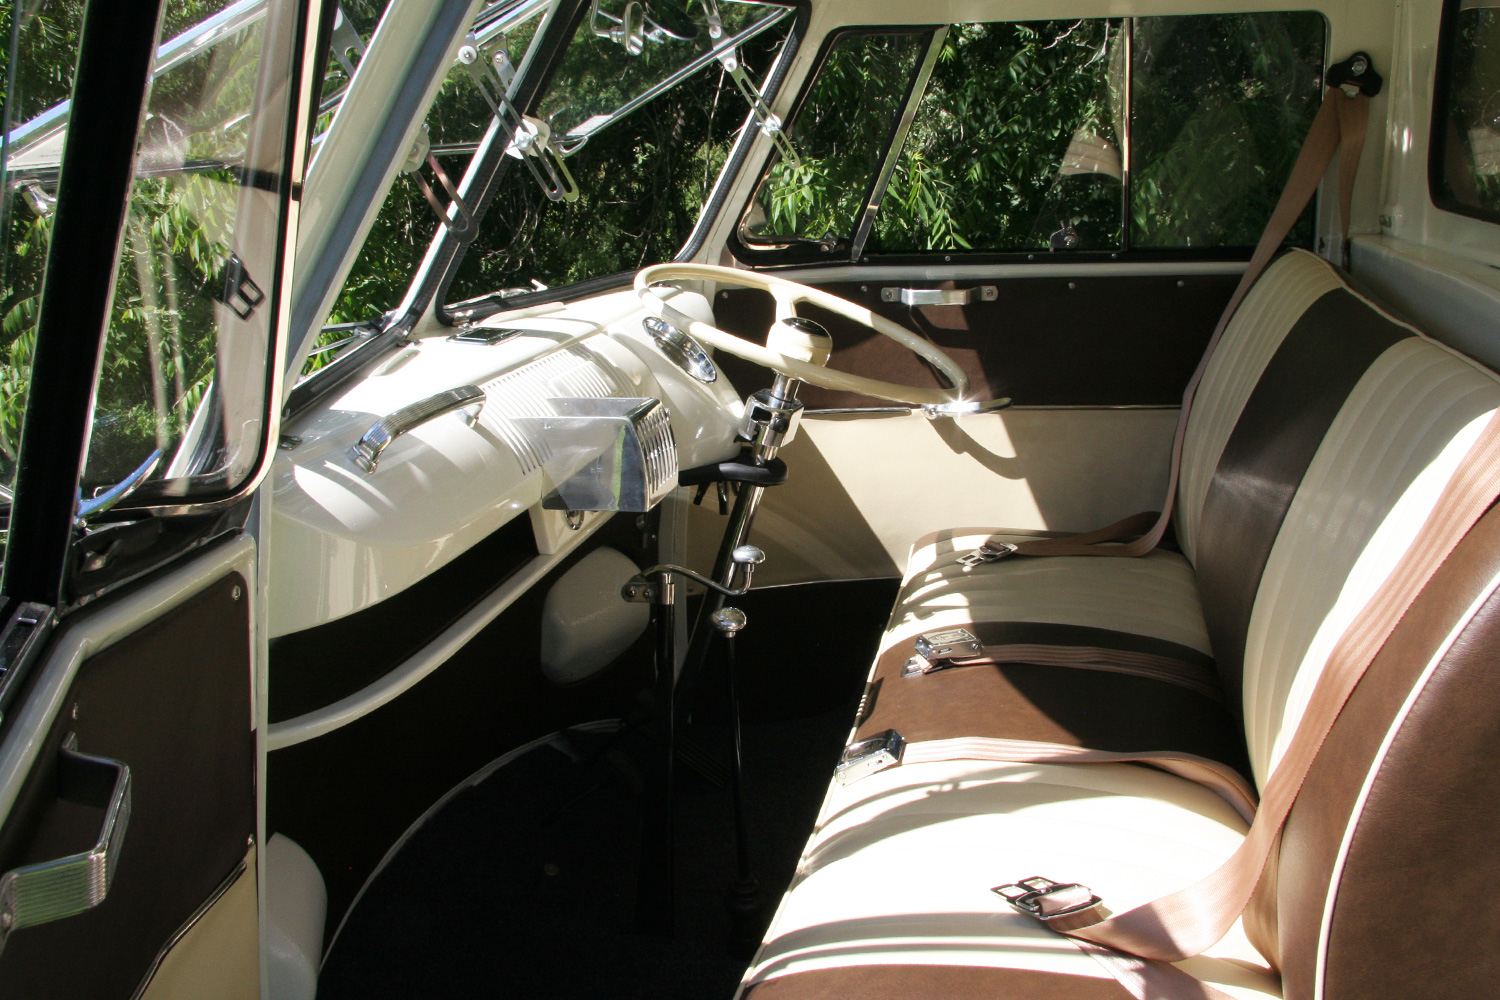 The Winedub's plush interior, 1958 style.